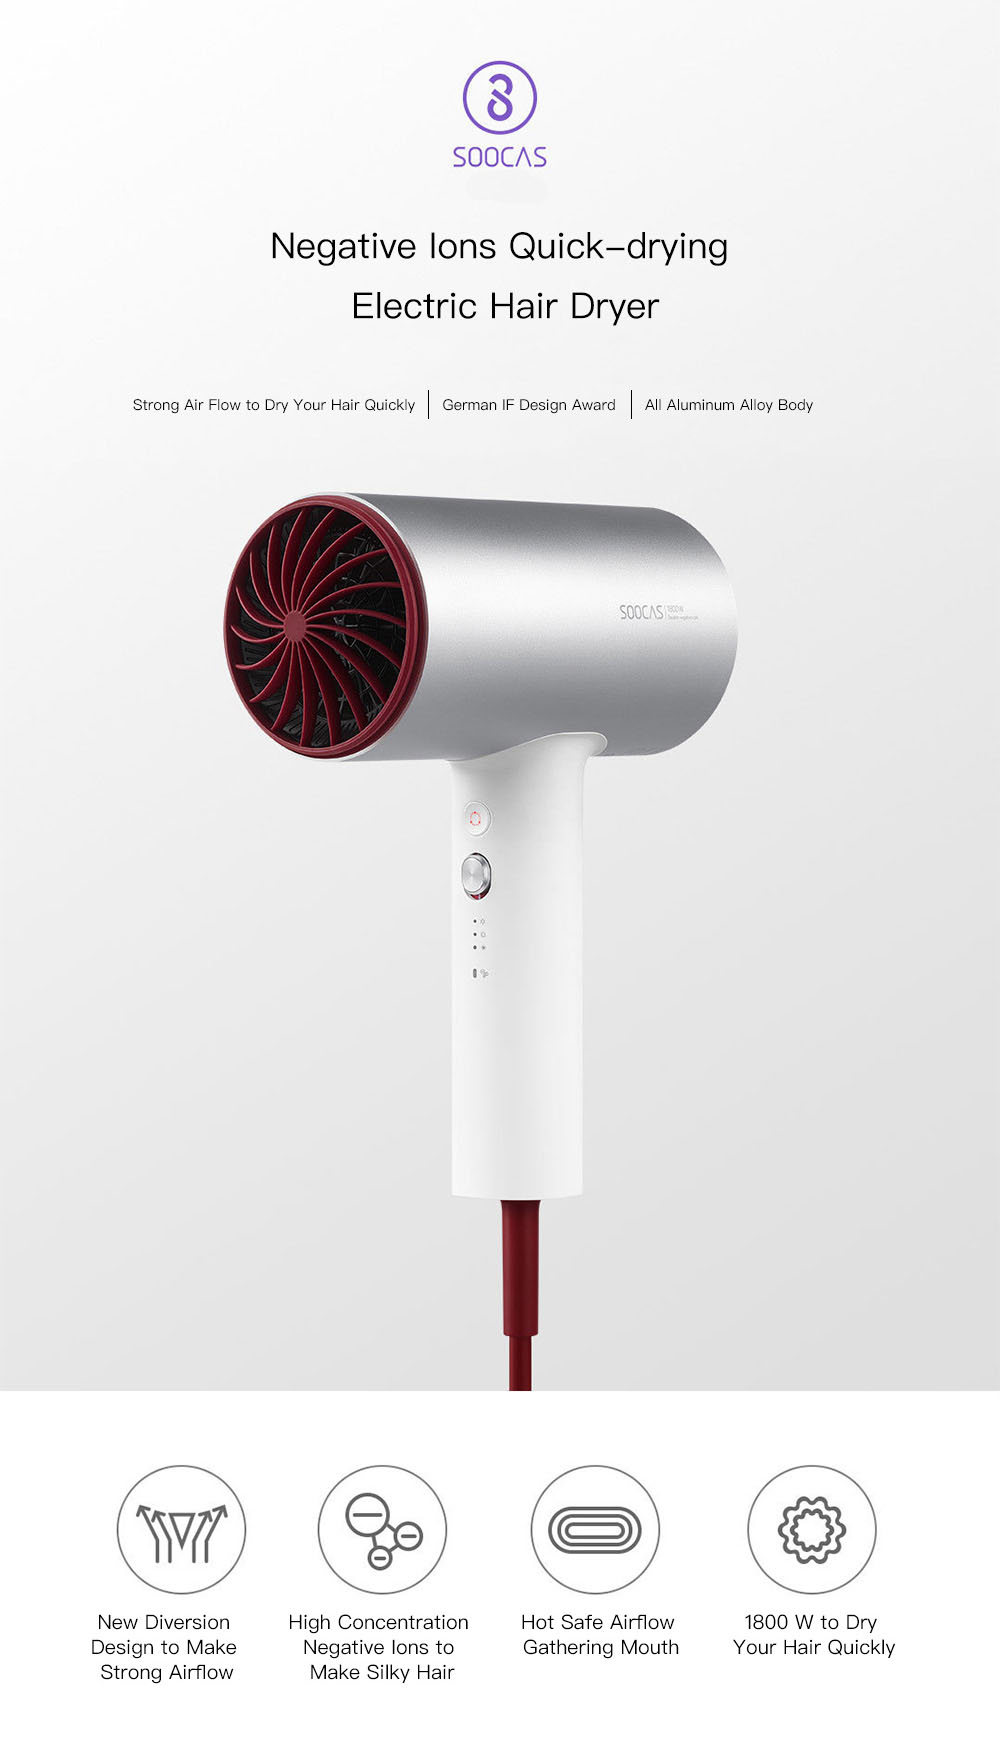 XIAOMI SOOCAS H3 Anion HairDryer Aluminum Alloy Body 1800W Air Outlet Anti-Hot Innovative Diversion Design